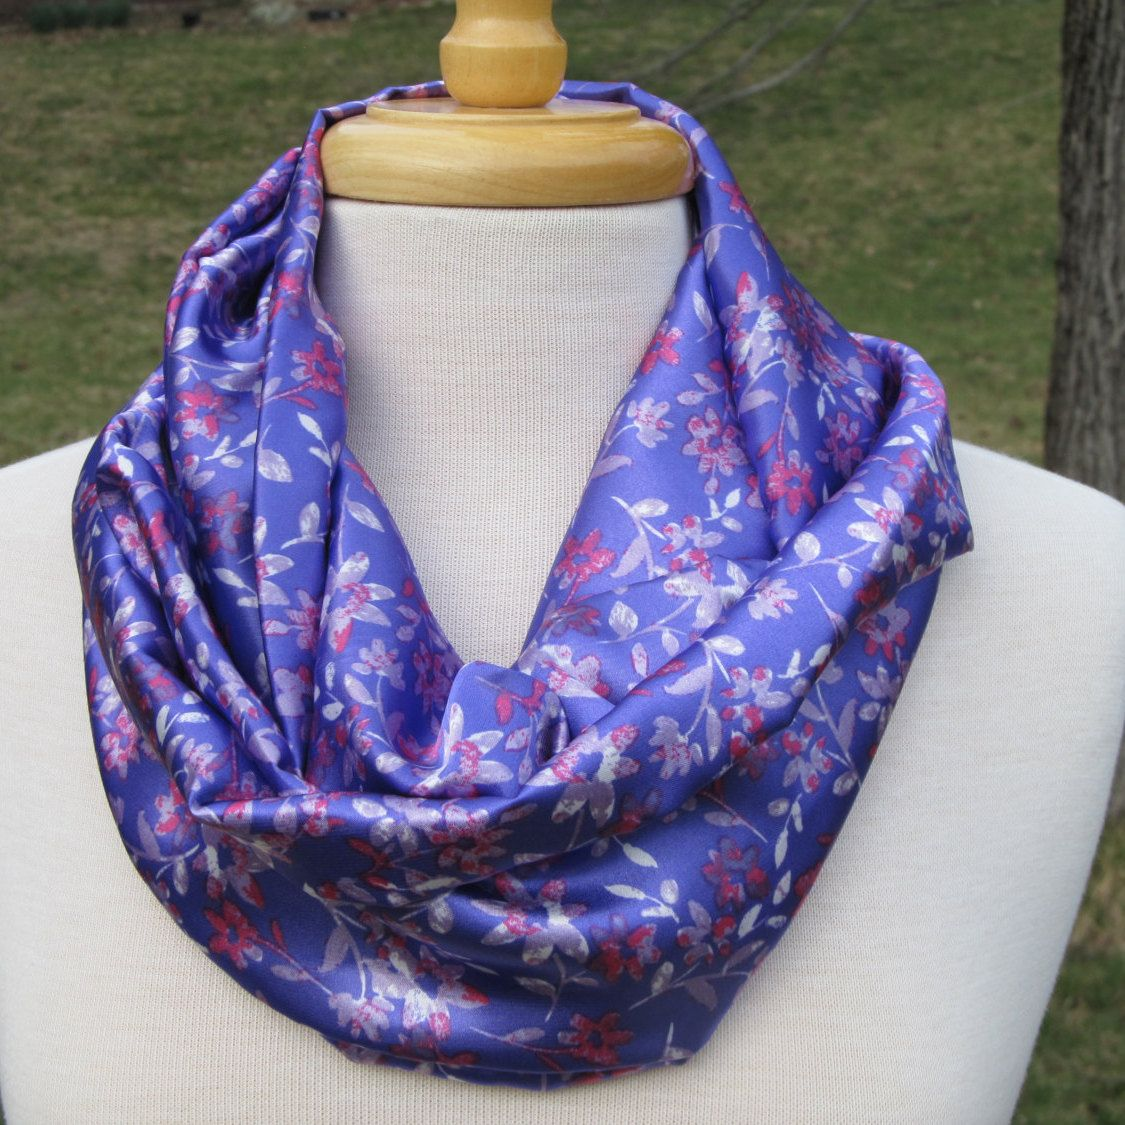 Purple, pink, and gray Infinity Scarf, Silky fabric loop scarf, pink and gray on purple floral print circle scarf, silky floral print scarf by sewnansidesigns on Etsy